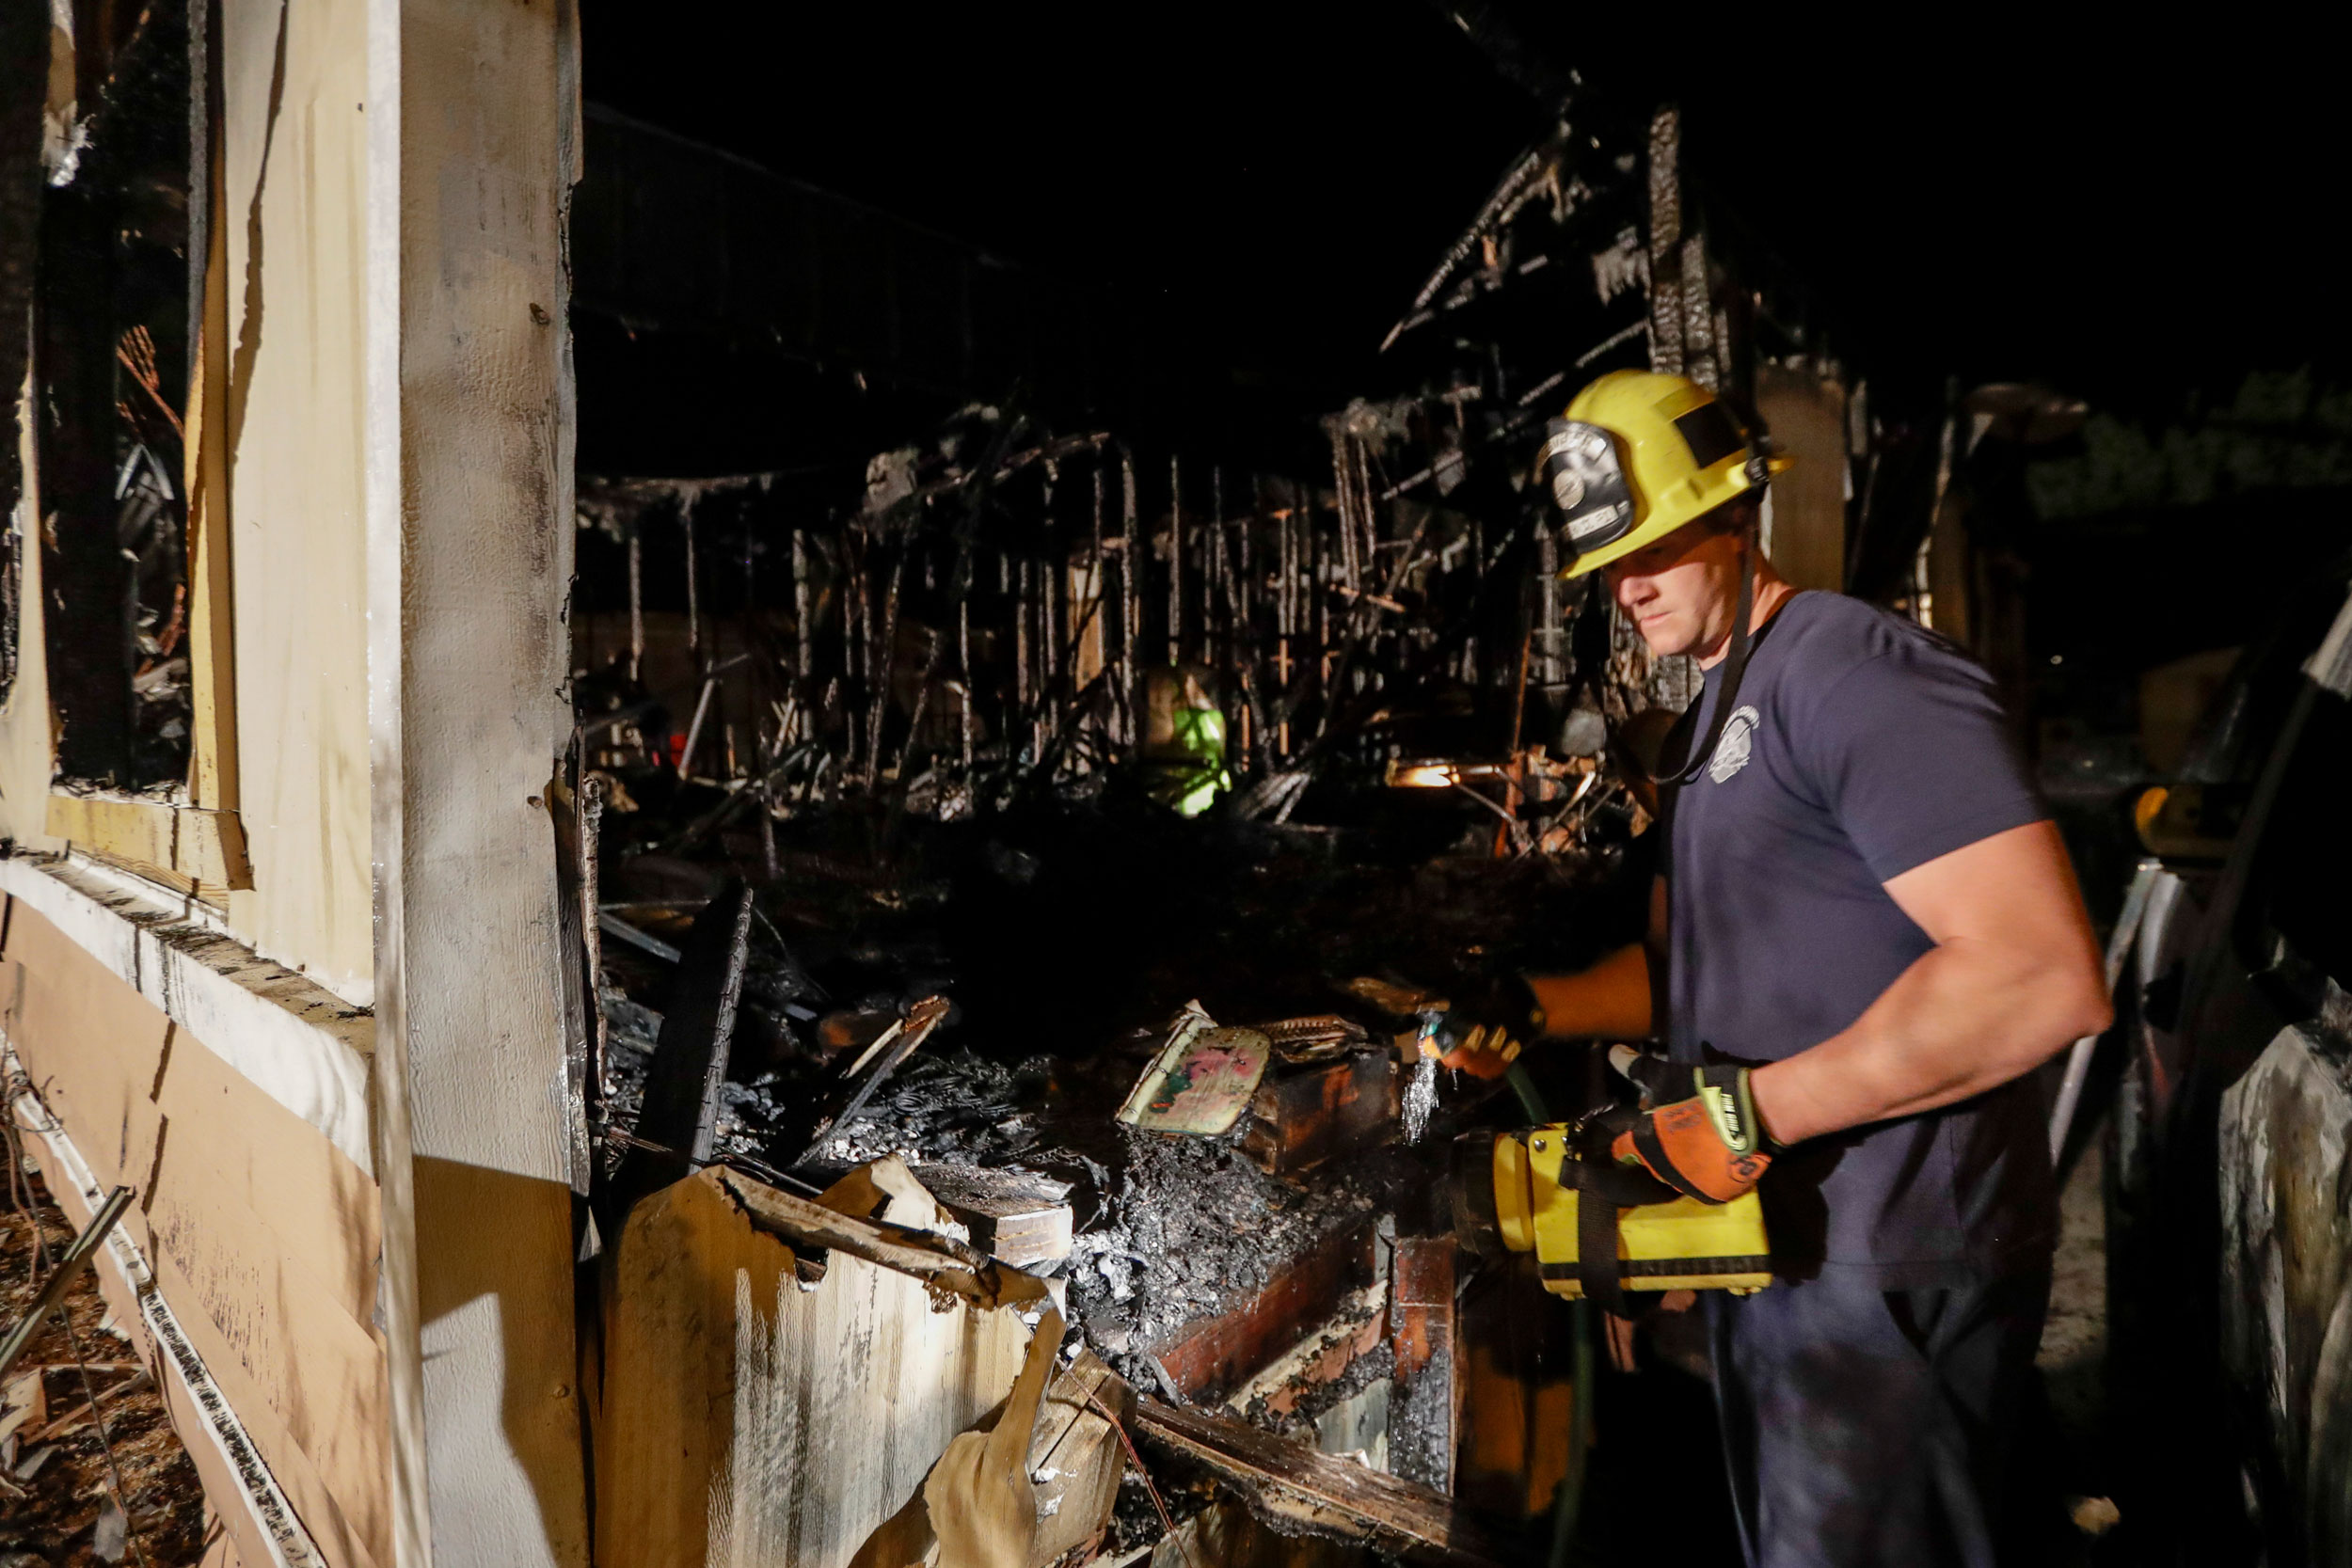 A fireman looks over a home that burned after an earthquake in Ridgecrest, California, Saturday, July 6, 2019.